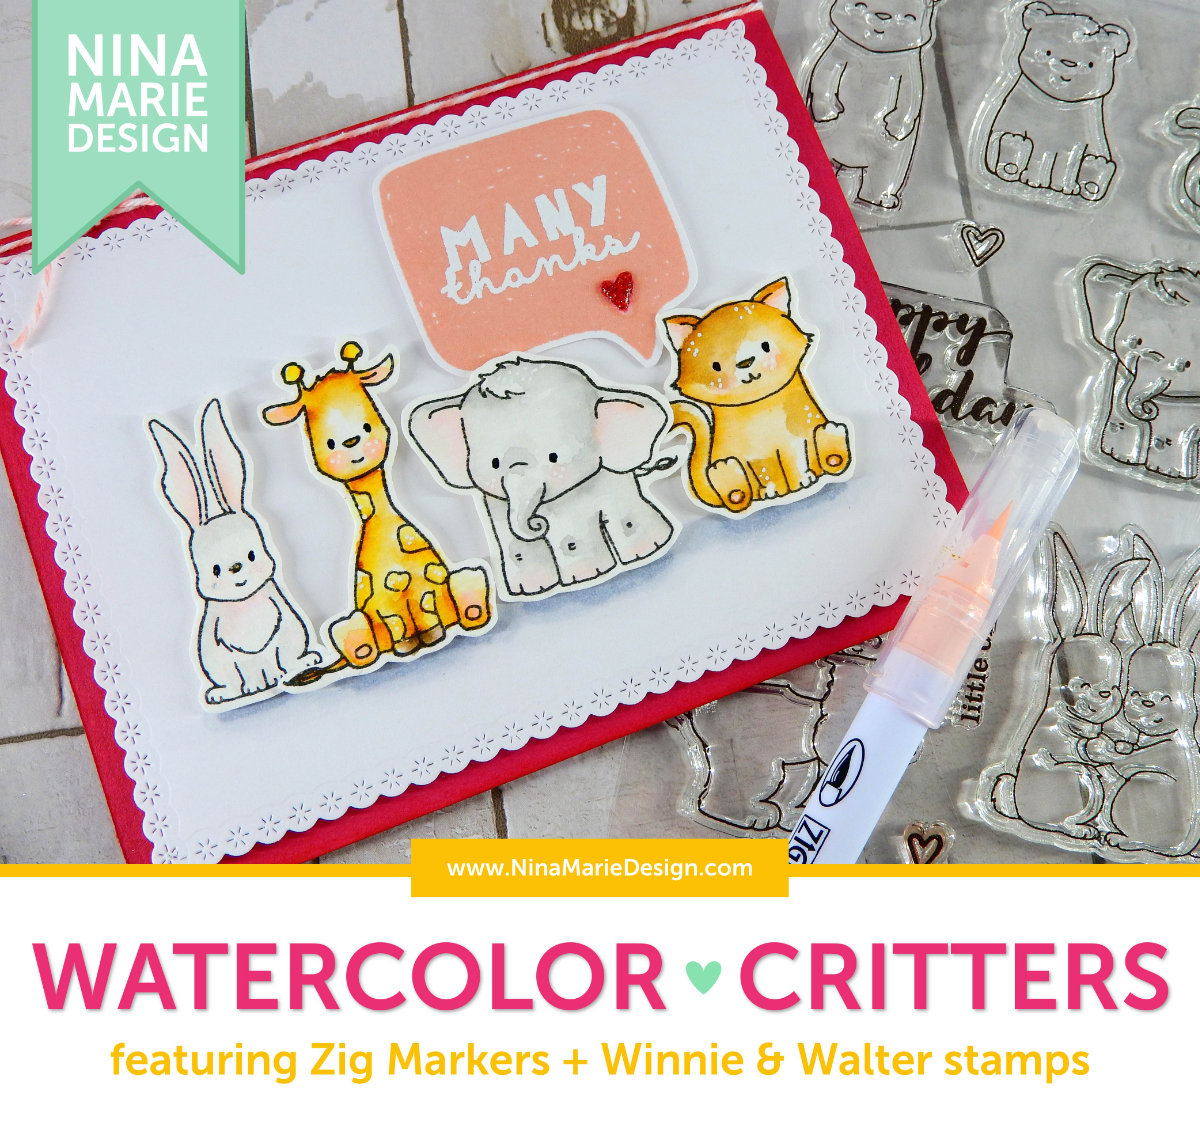 Zig Watercolor Critters + Winnie & Walter 3rd Birthday Bash | Nina-Marie Design